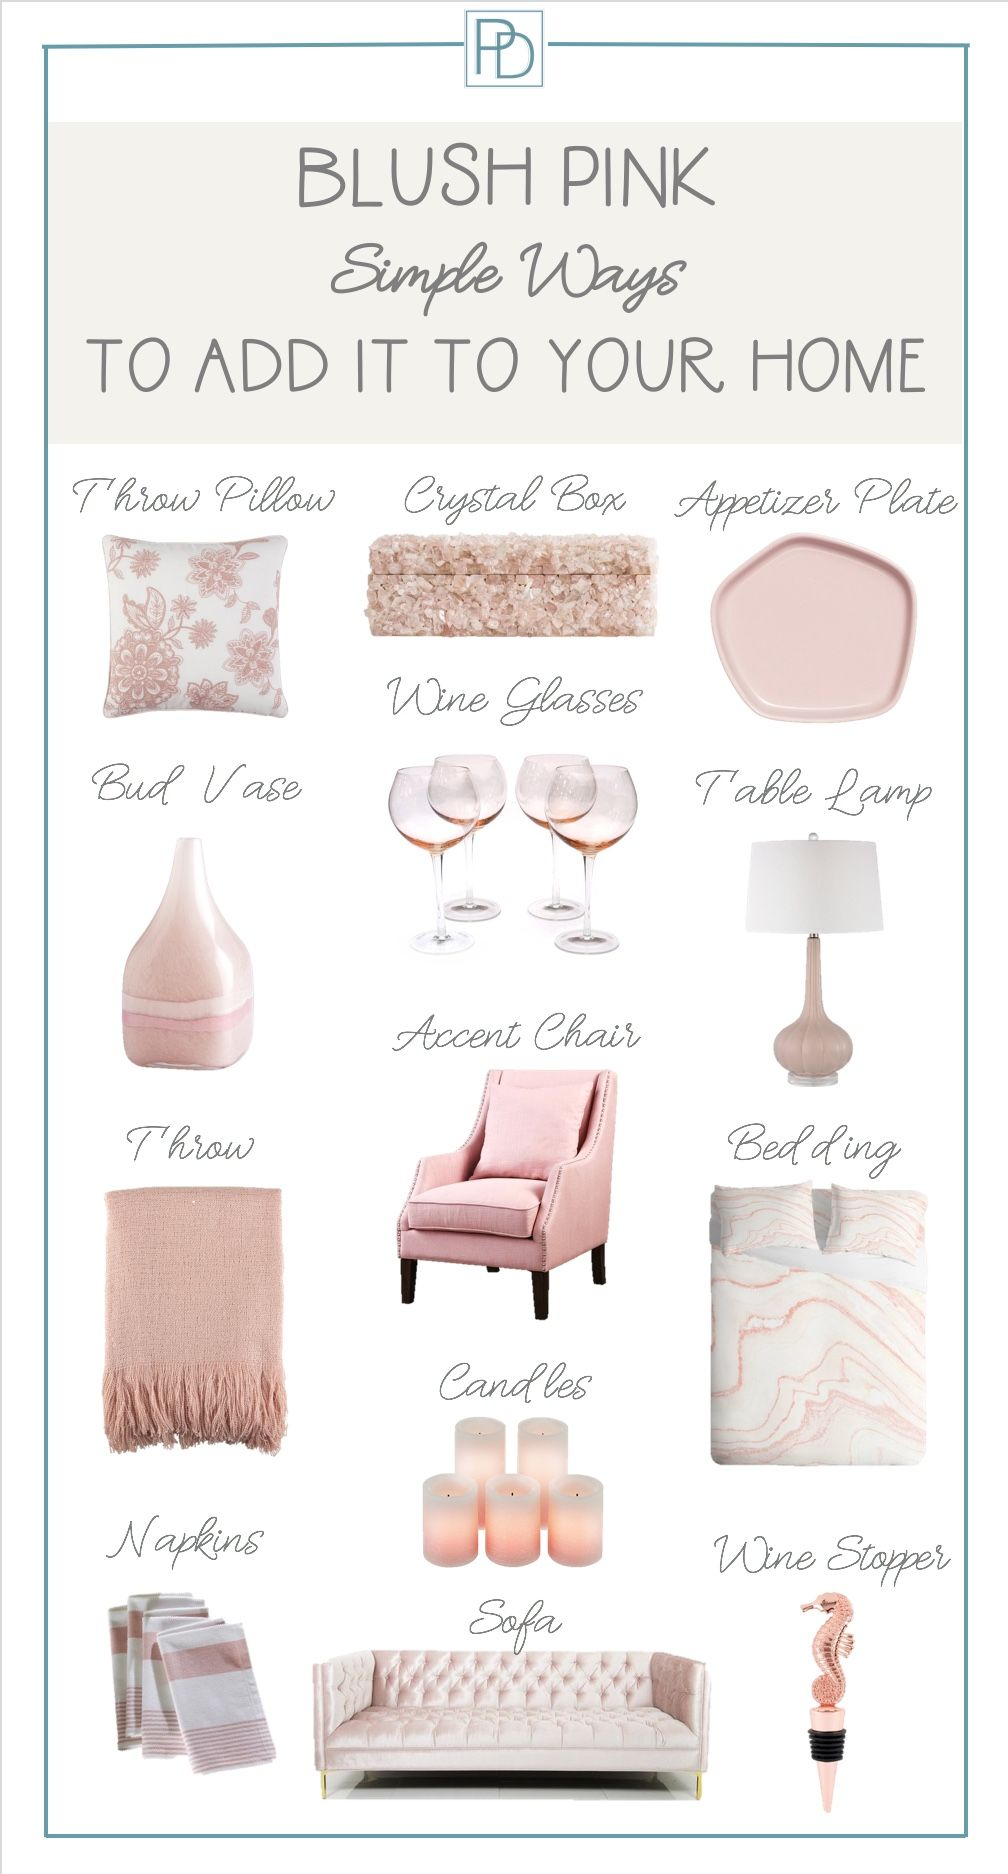 Blush Pink Is A New Home Decor Neutral Funky Home Decor Pink Home Decor Home Decor Styles